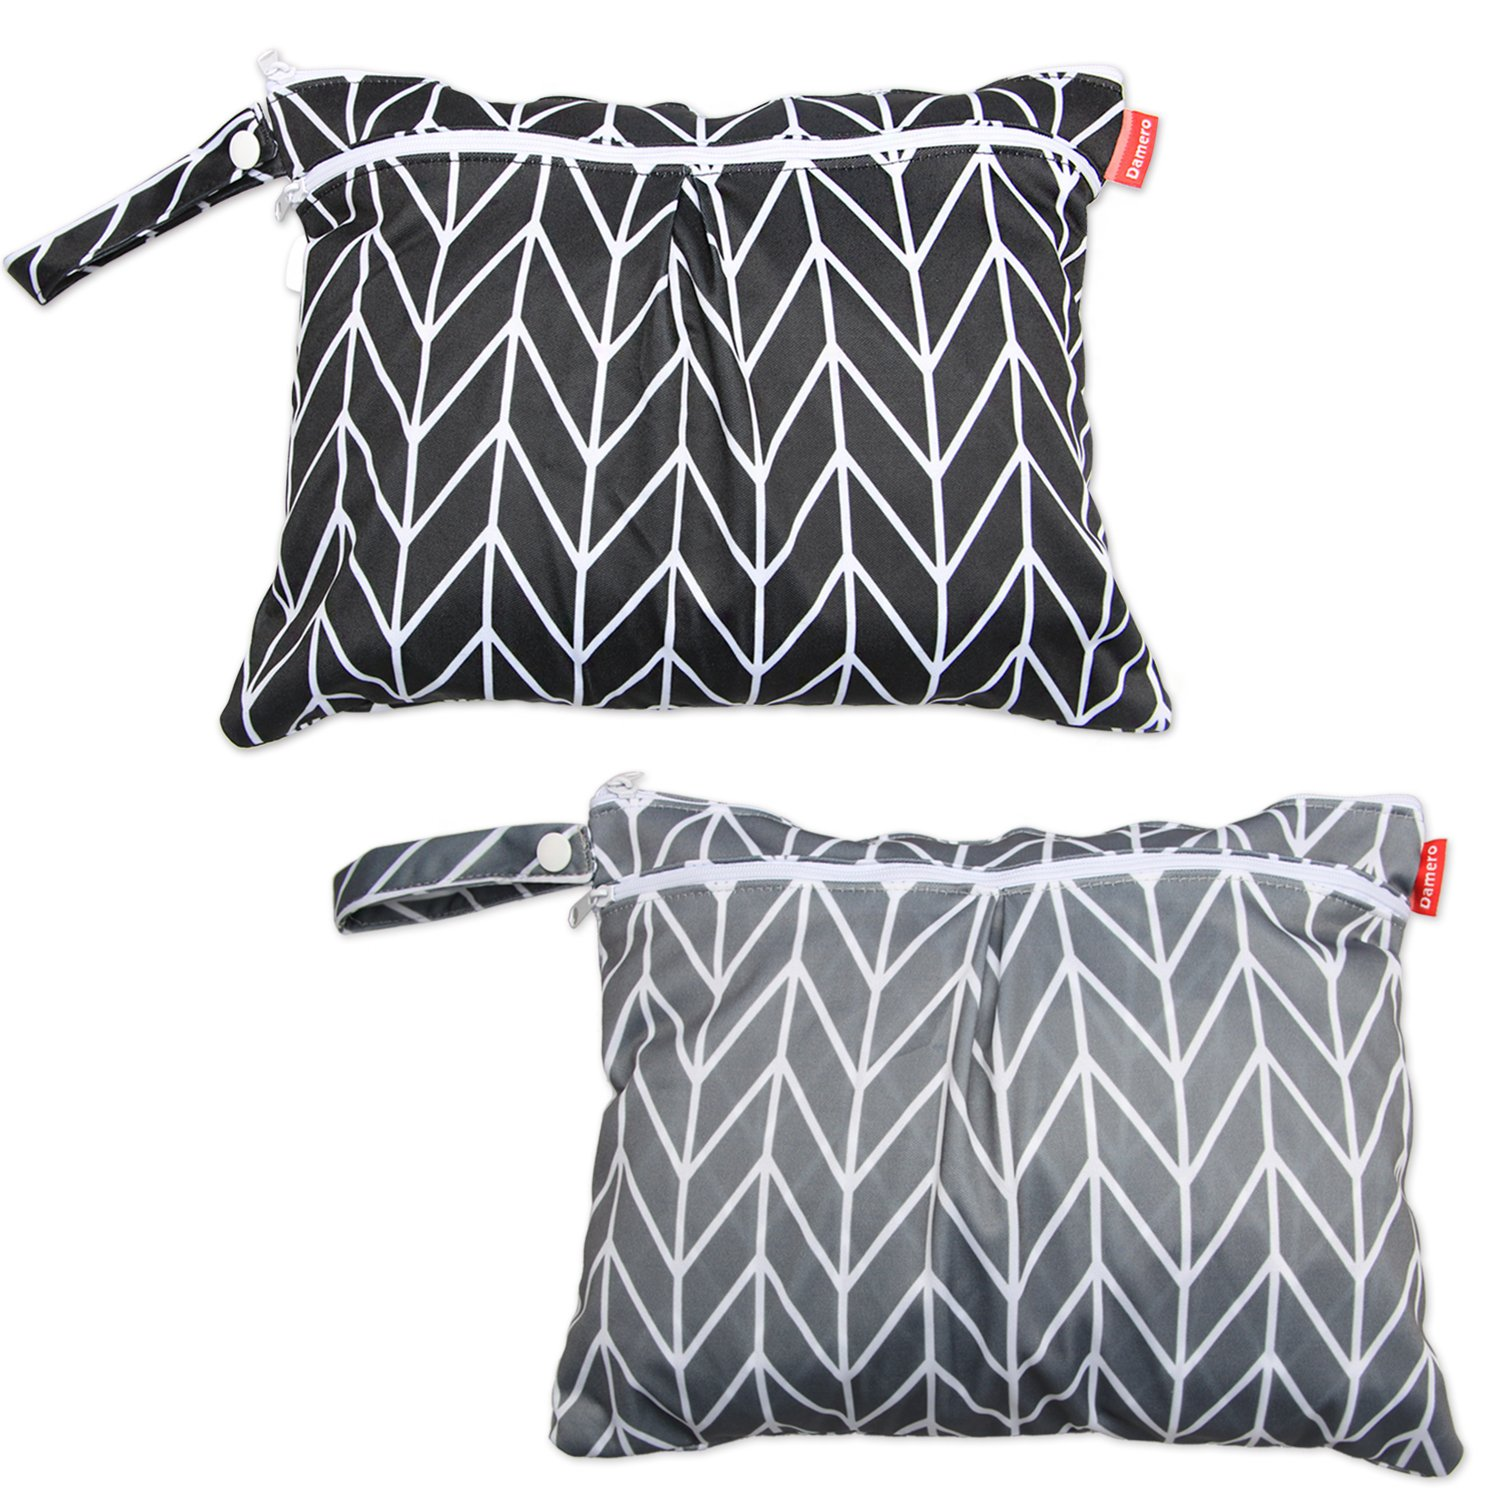 Damero 2pcs Travel Wet and Dry Bag with Handle for Cloth Diaper, Pumping Parts, Clothes, Swimsuit and More, Easy to Grab and Go (Small, Gray Arrows+ Black Arrows) by Damero